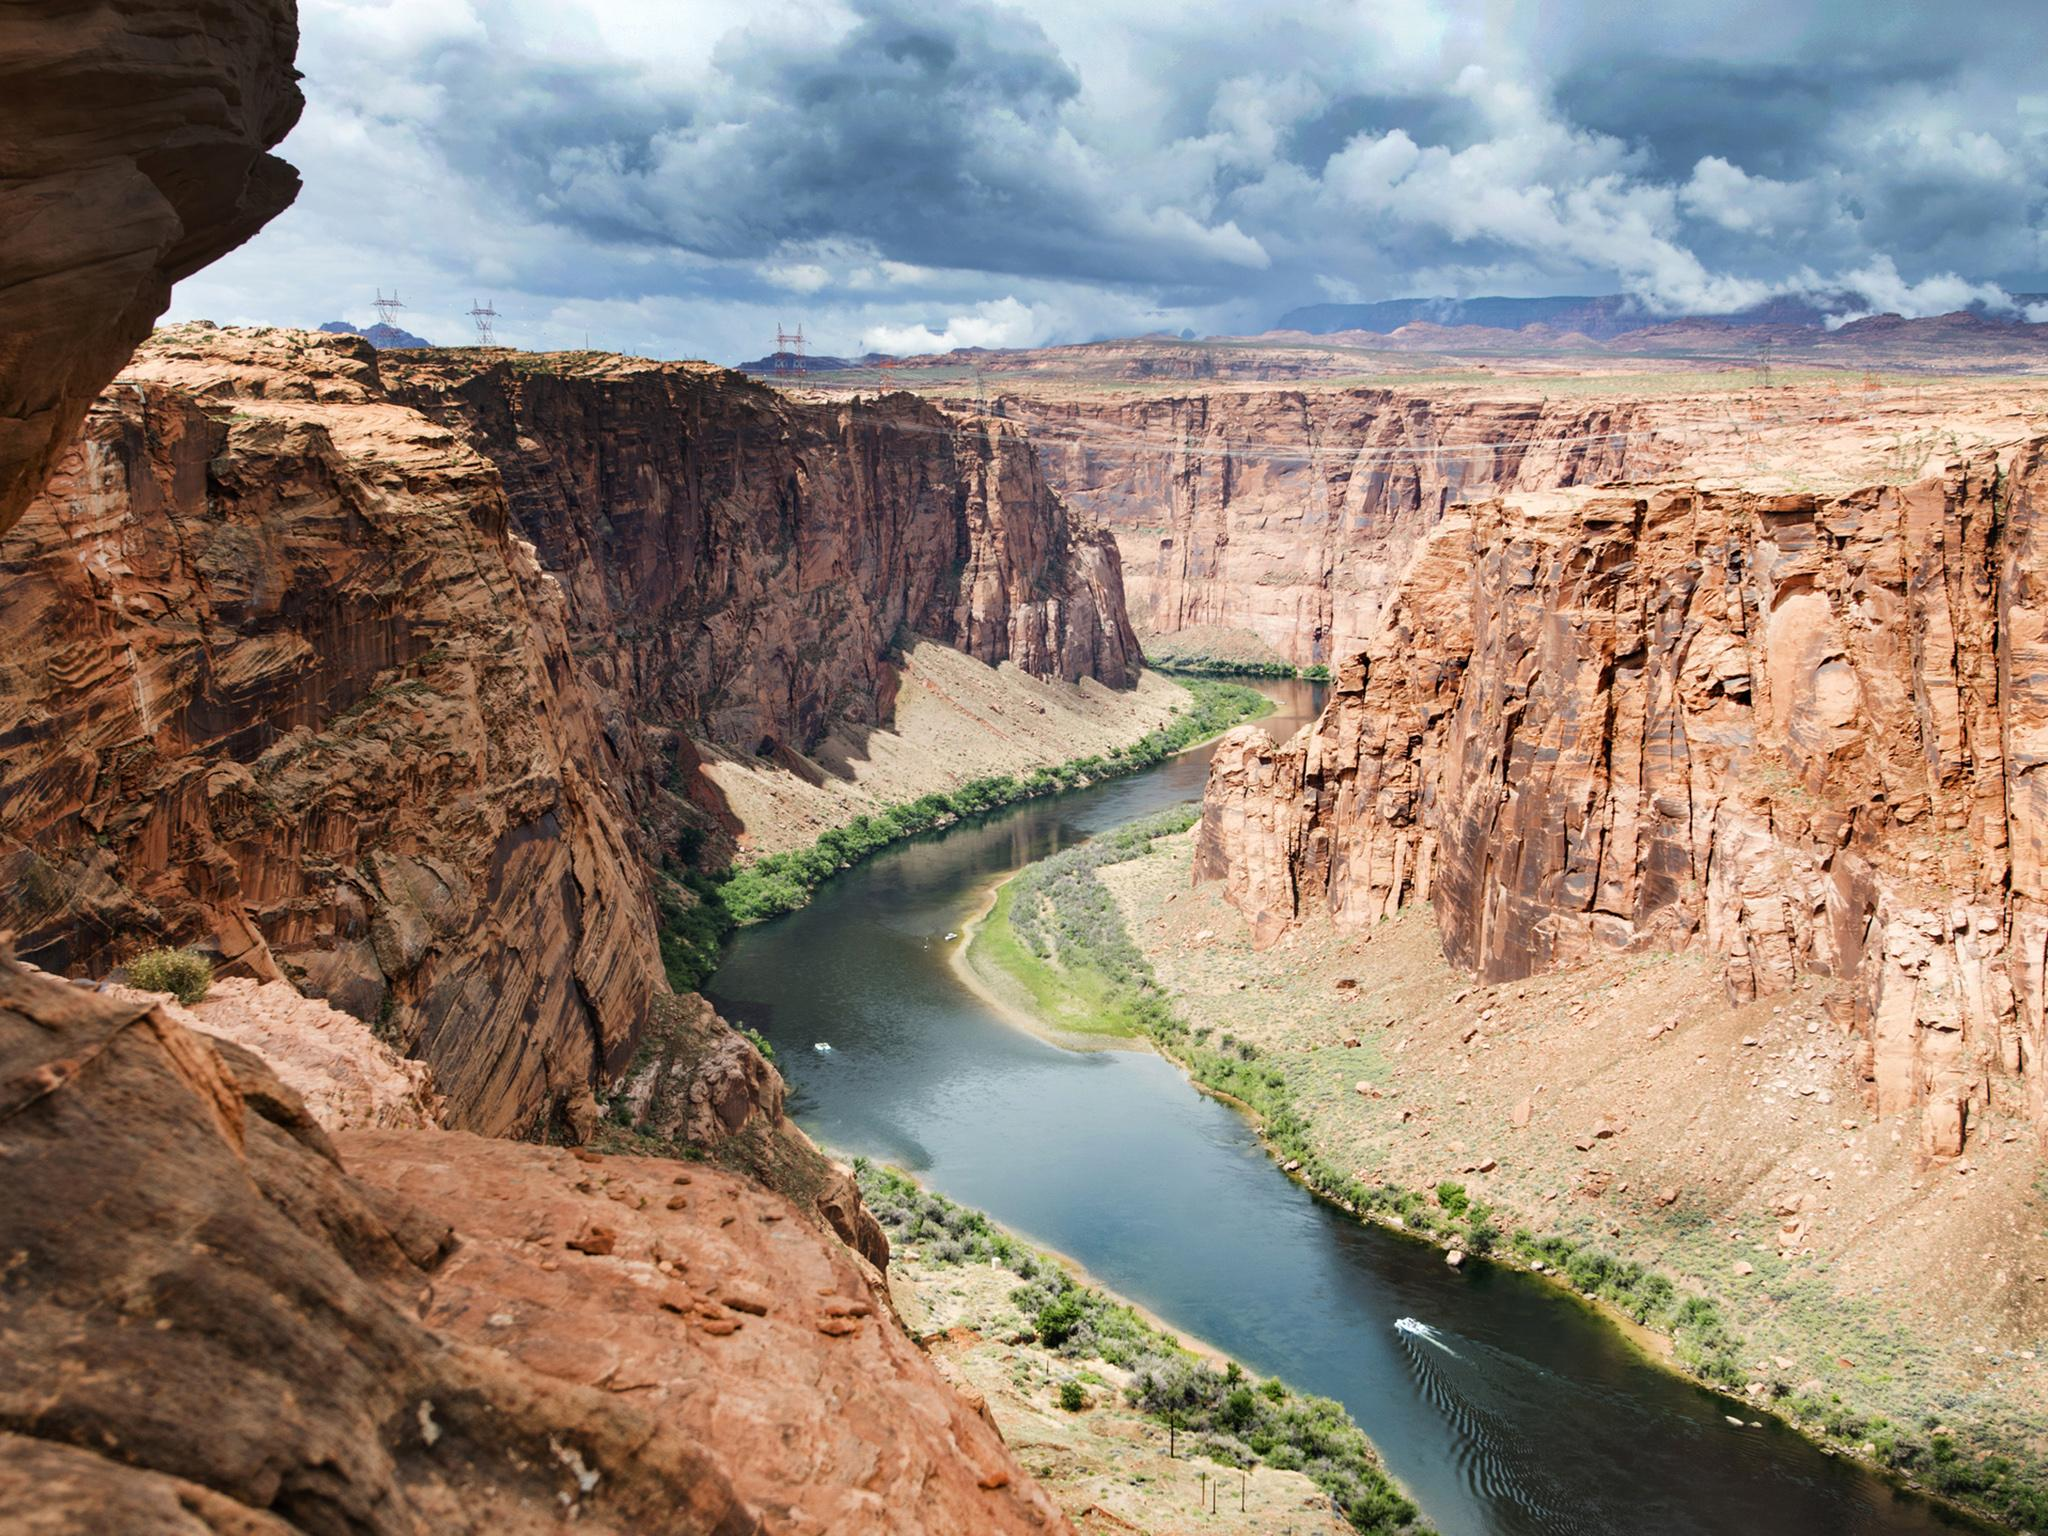 Millions of Americans facing 'megadrought' as Colorado river shrinks to alarming low